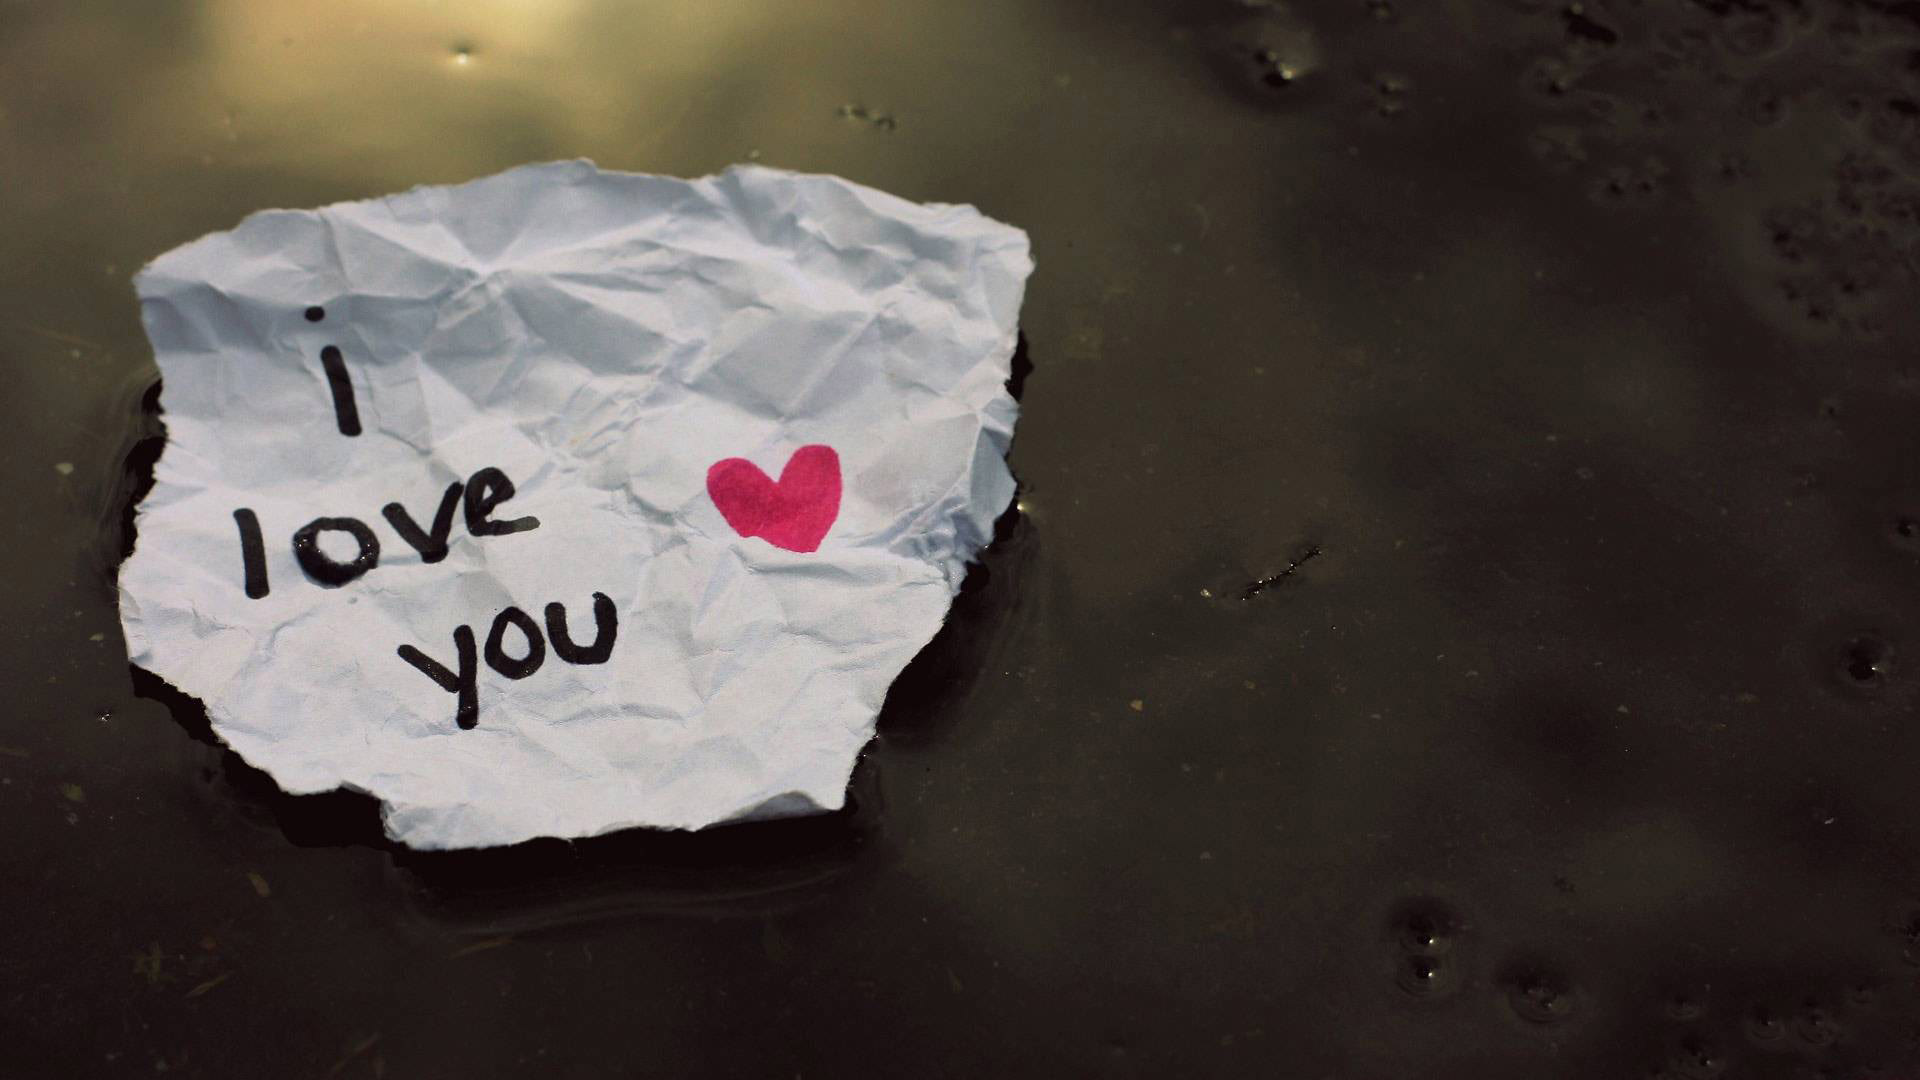 Hd wallpaper i love you - Love You Wallpapers 1080p Hd Wallpaper Hd Wallpapers Source